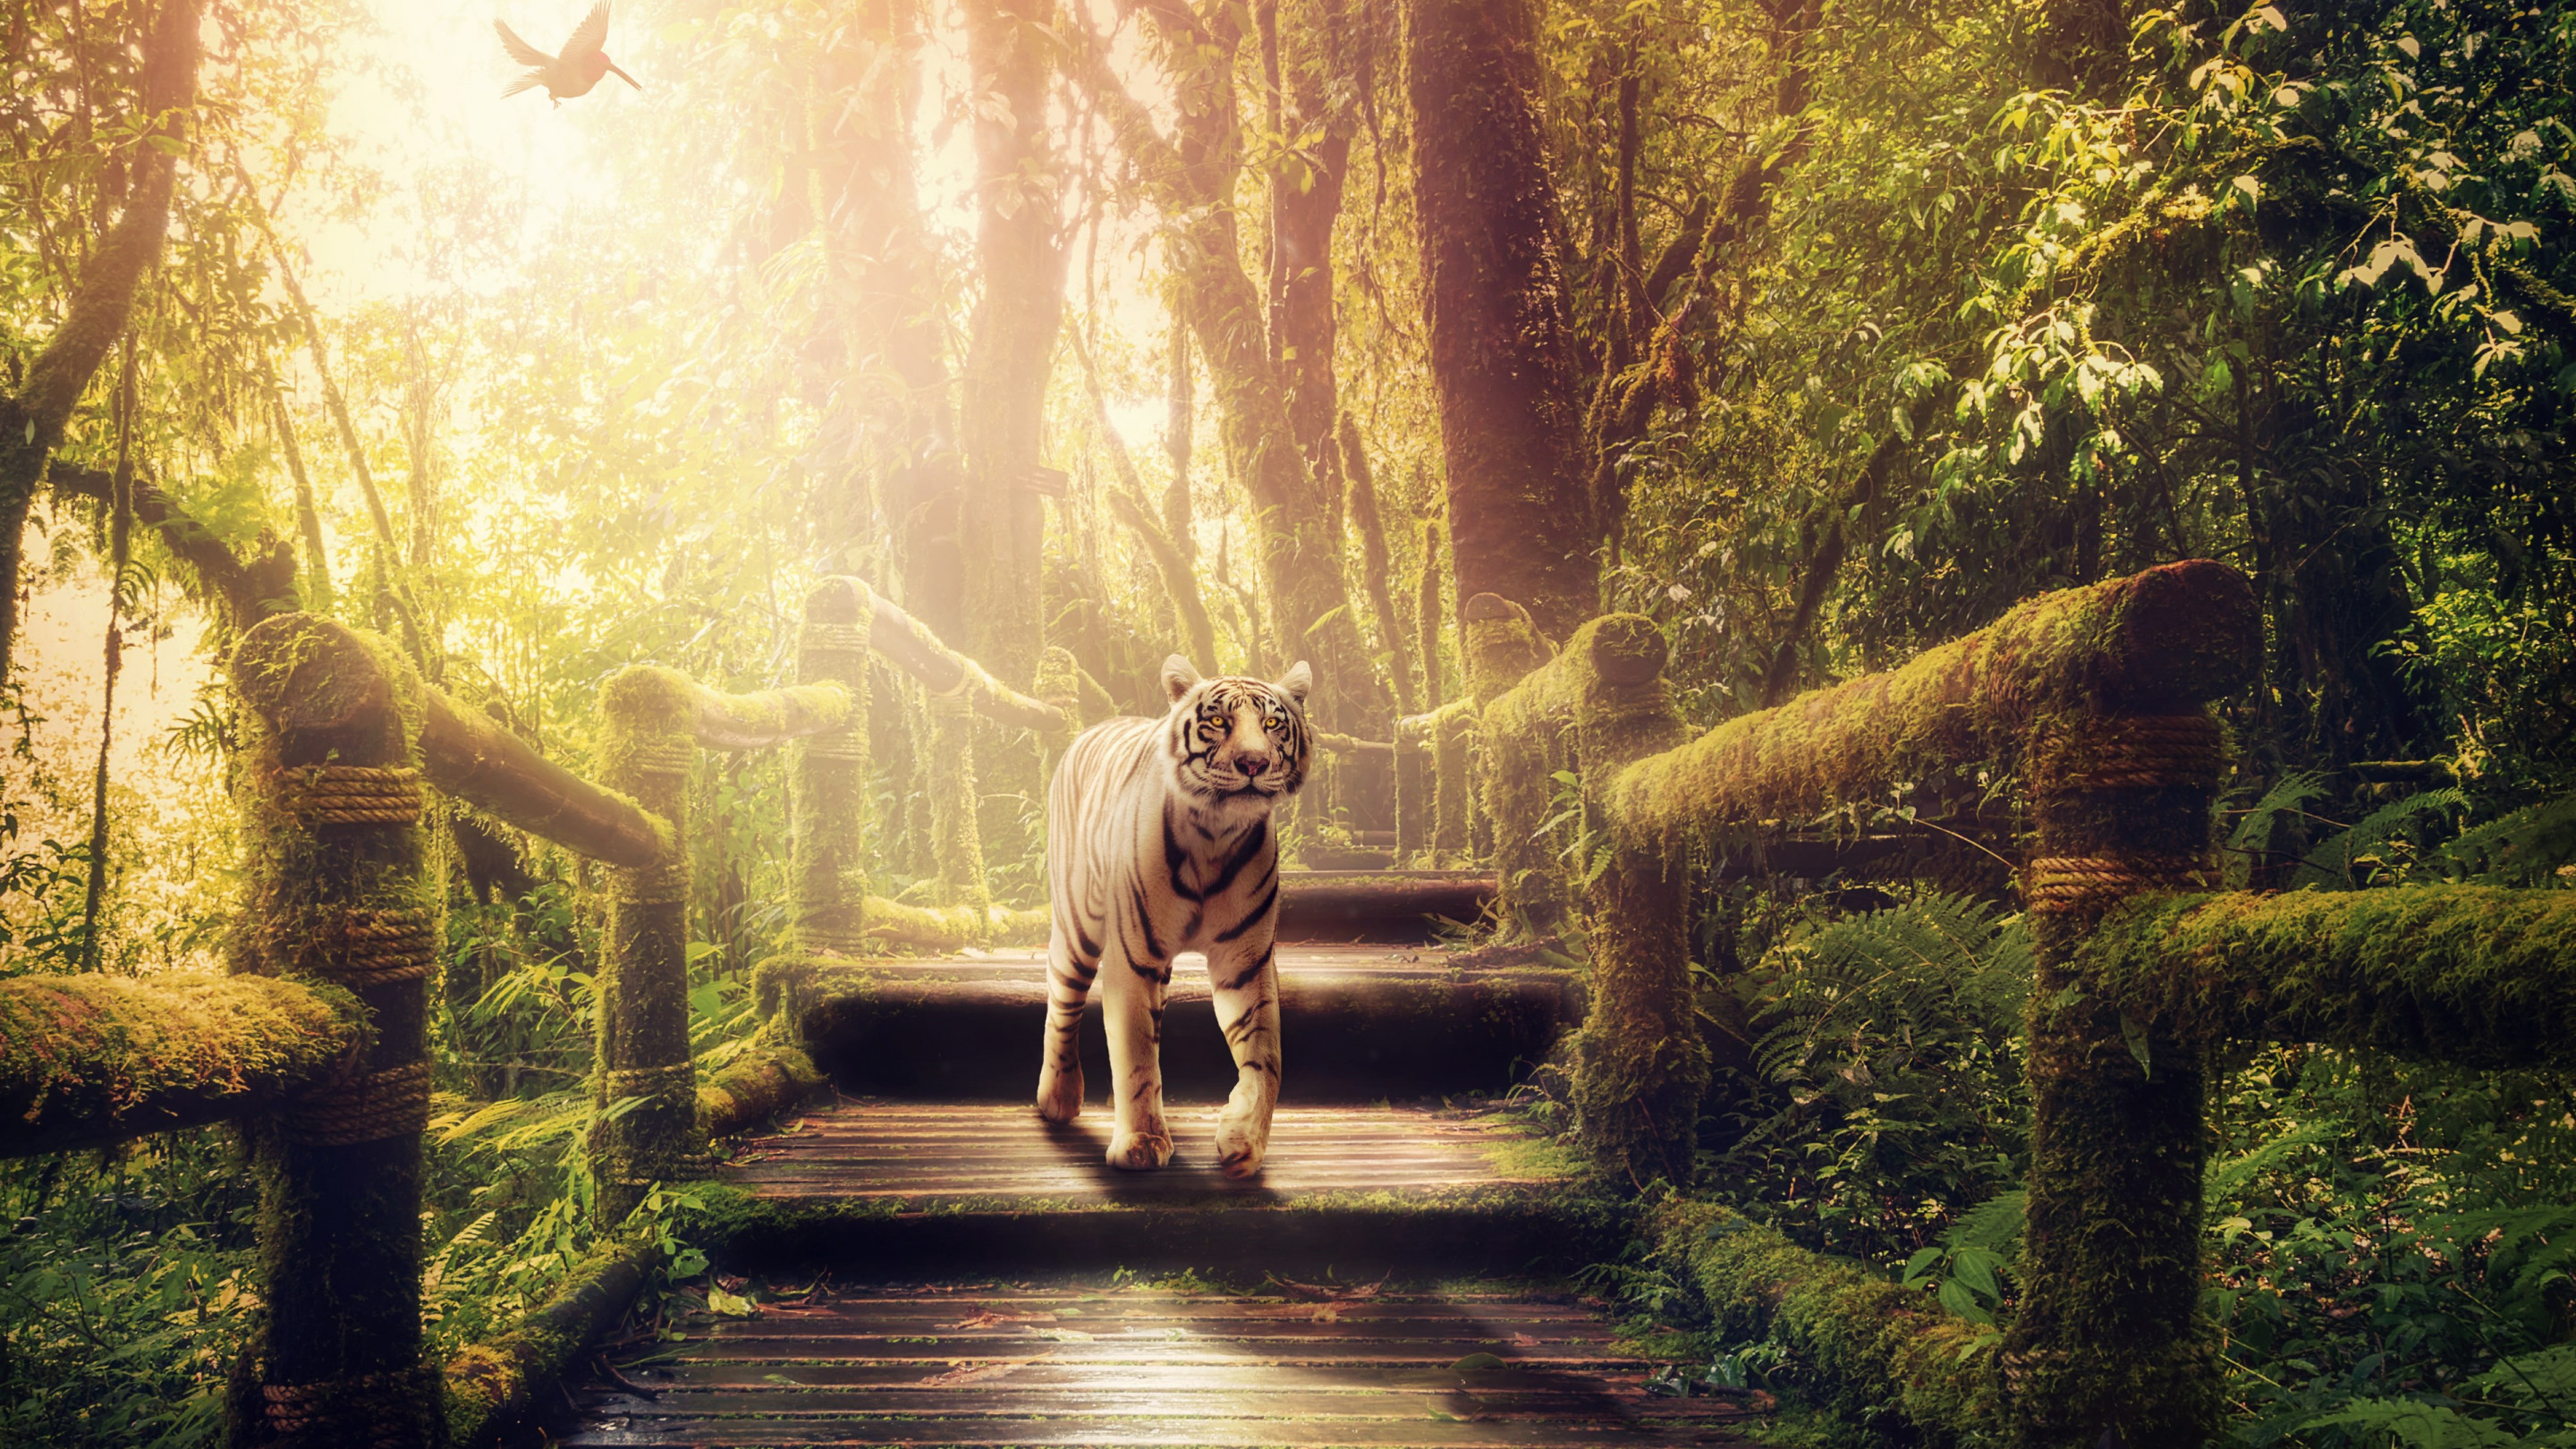 The tiger of jungle wallpaper 2880x1620